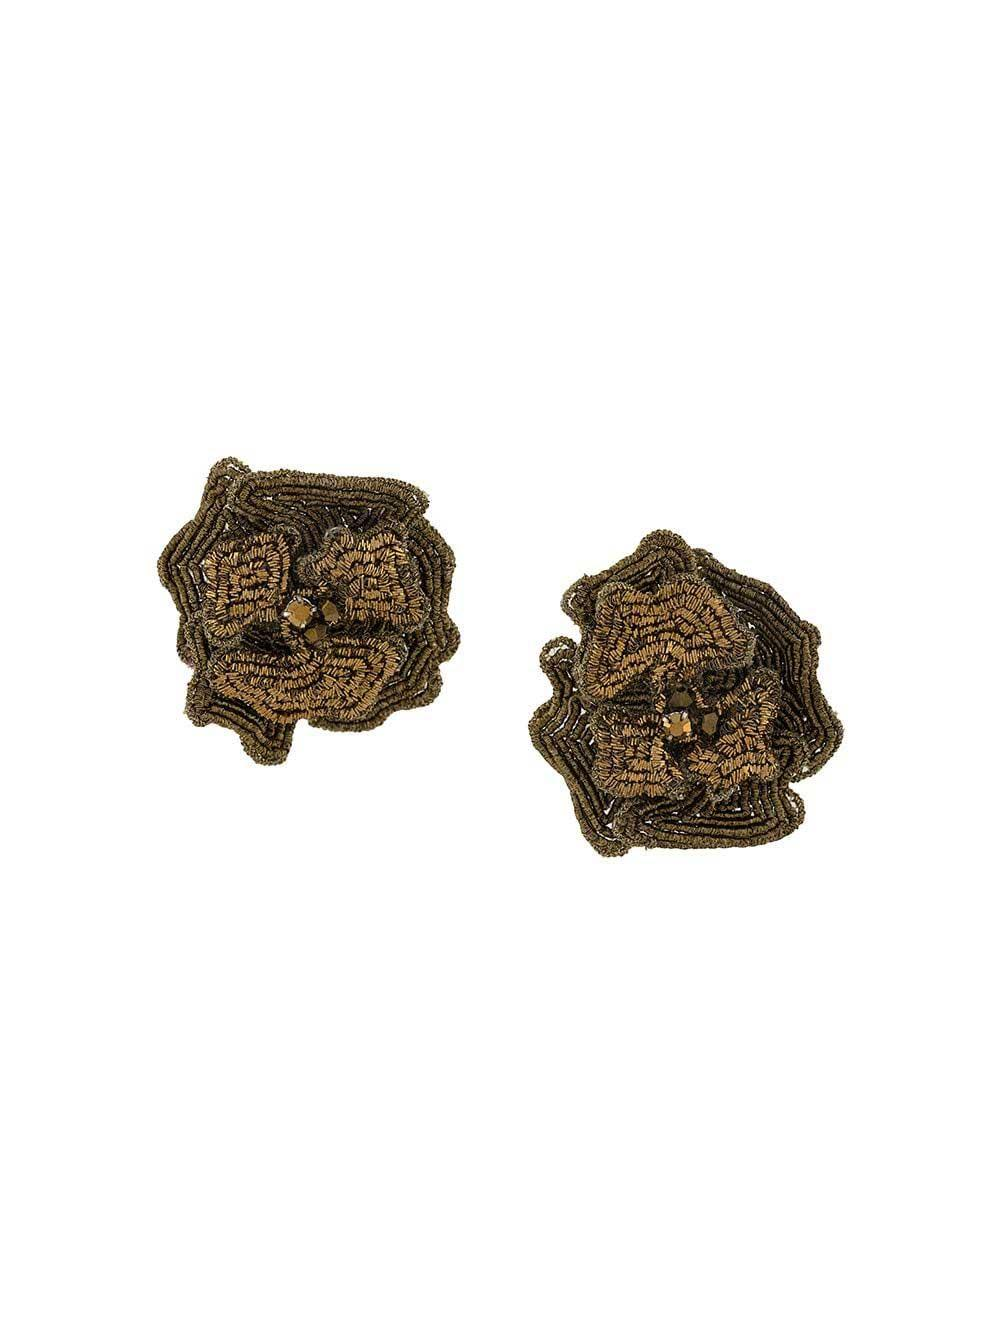 Adrianna Flower Stud Earrings Item # E291-033